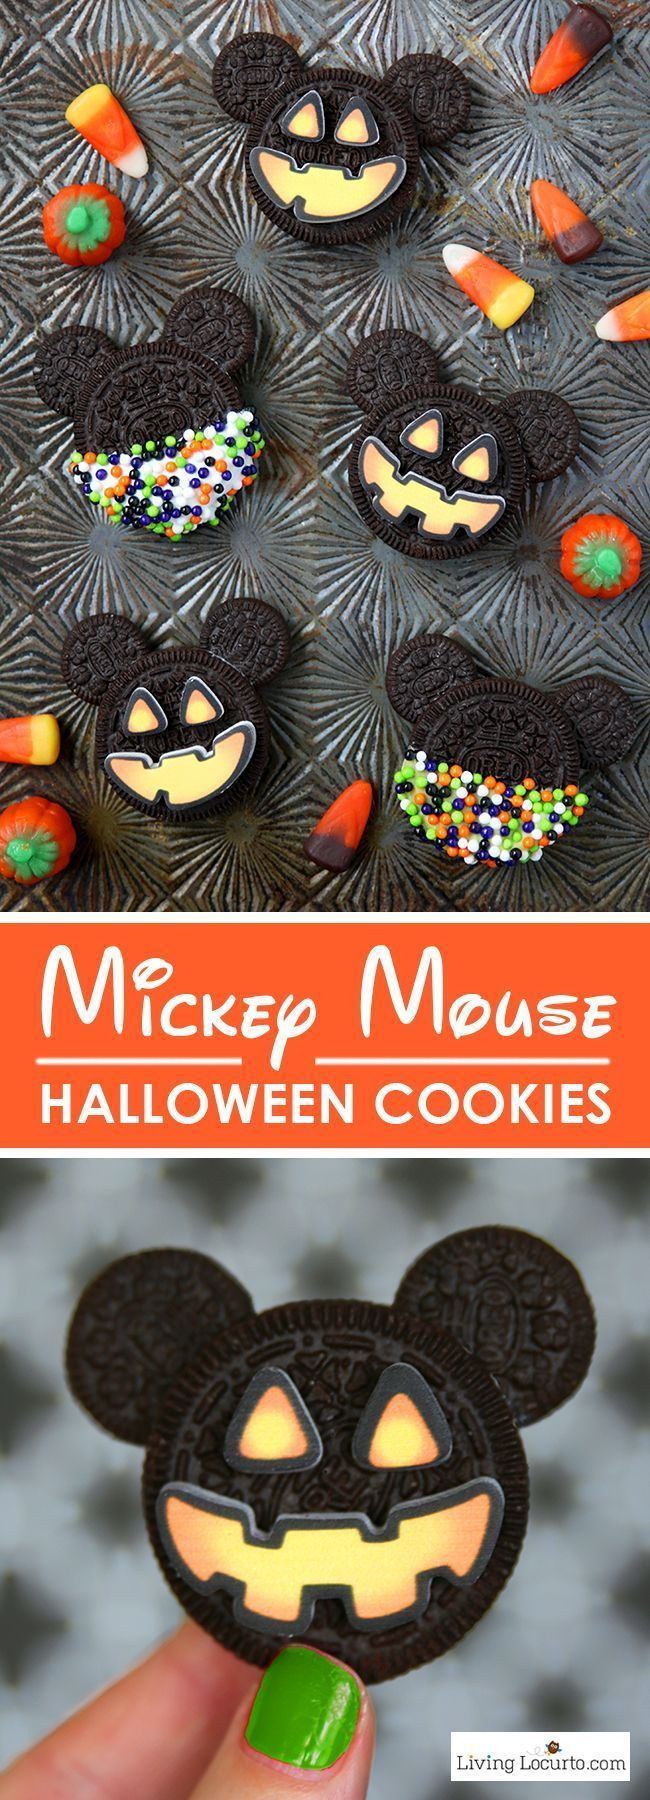 Mickey Mouse Halloween Cookies are adorable Halloween Treats! Easy no bake cookie made with Oreo cookies. Fun food jack-o-lantern Disney themed holiday party dessert recipe for kids.